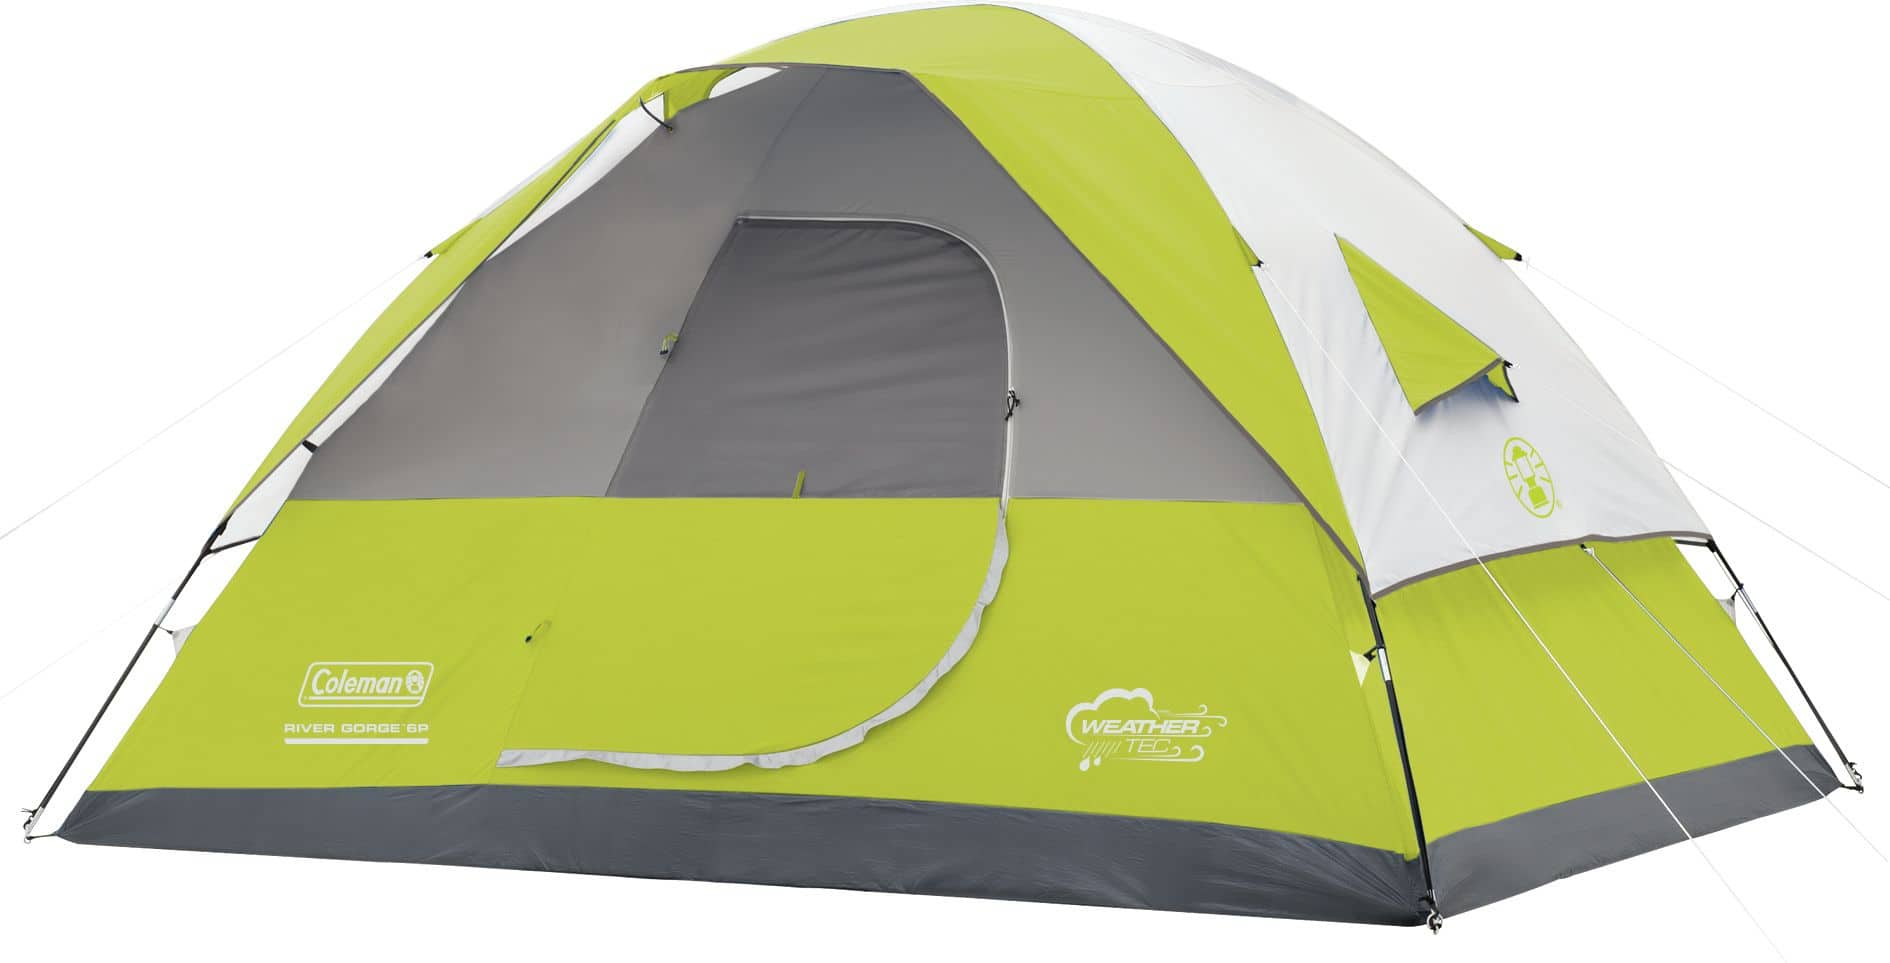 Coleman 6 Person Instant Dome Tent  sc 1 st  Yard and Tent Photos Ceciliadeval.Com & Coleman 6 Person Dome Tent - Yard and Tent Photos Ceciliadeval.Com